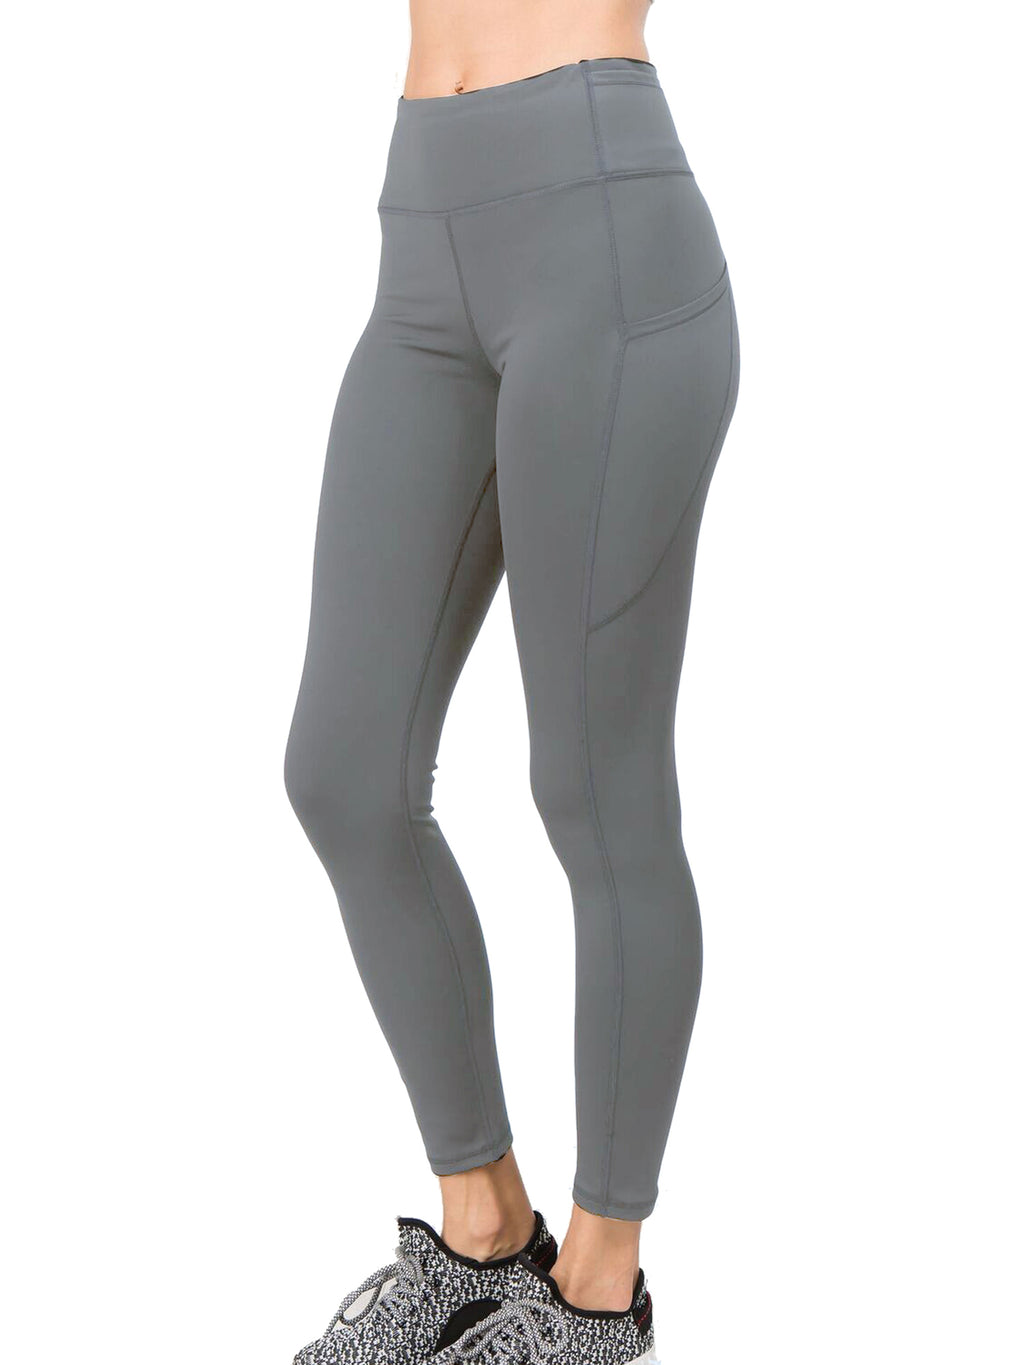 Charcoal Gray High Waist Leggings With Pockets